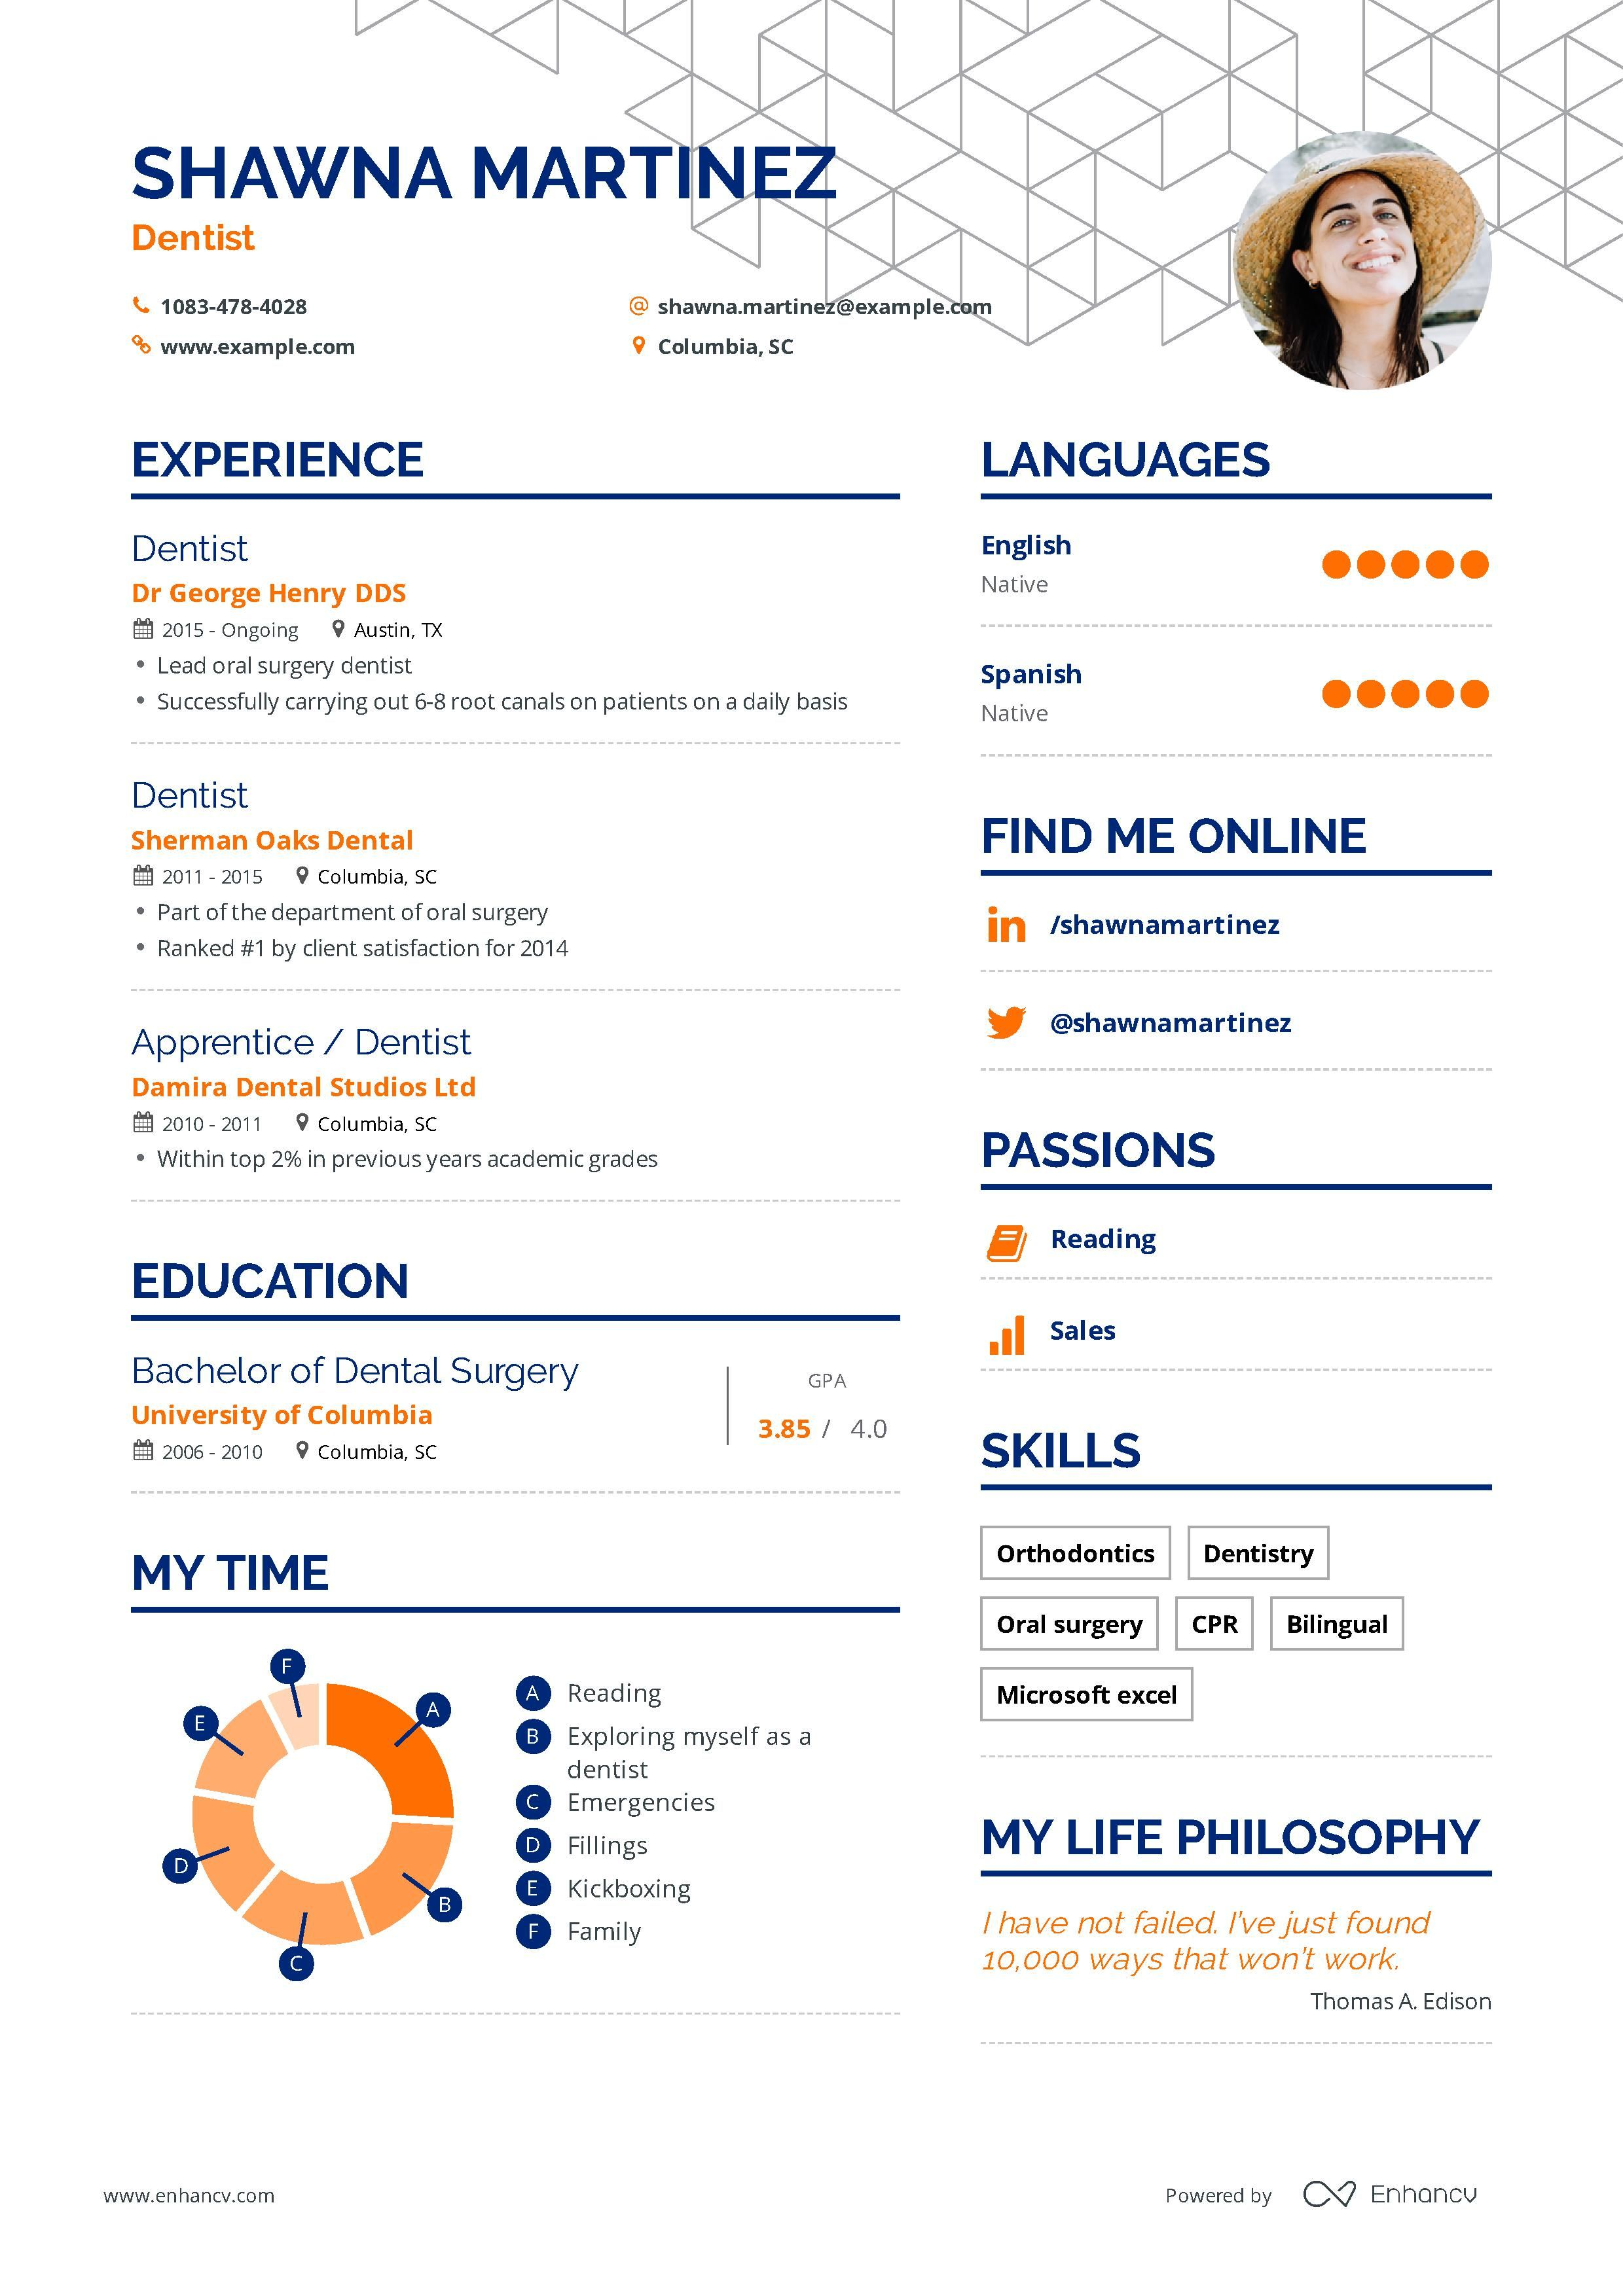 Dentist resume examples skills templates more for 2020